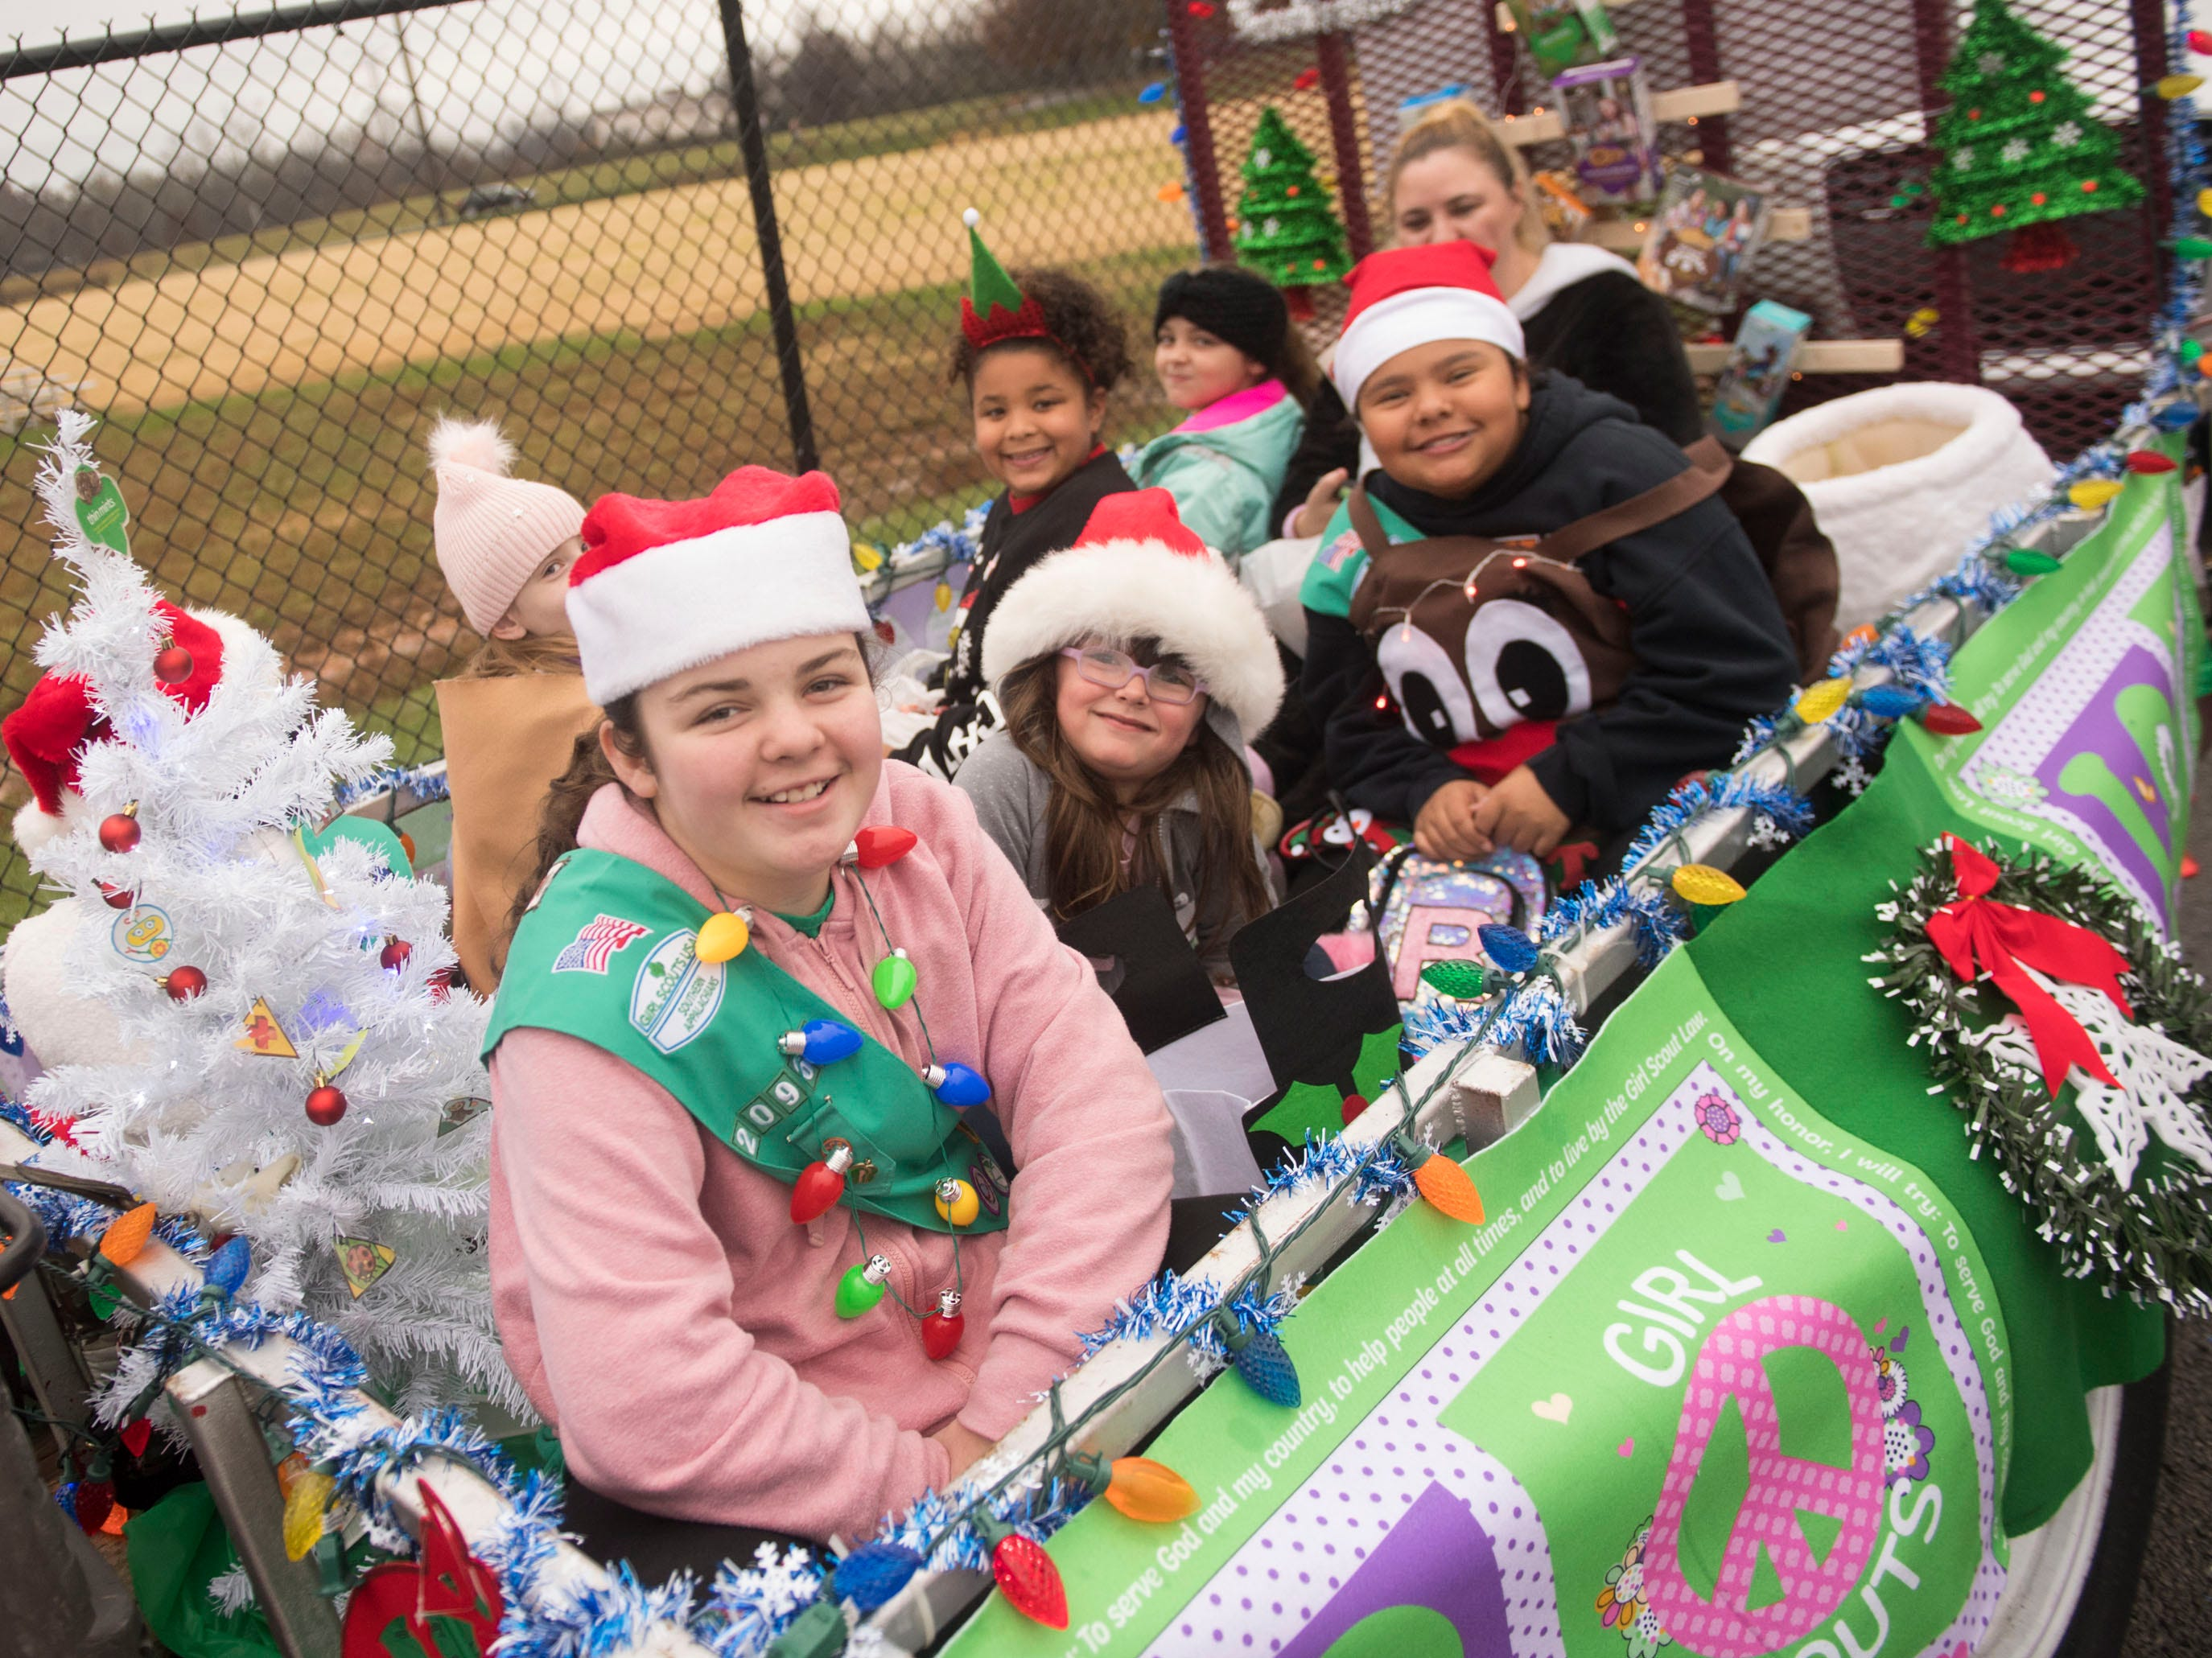 Girl Scouts Troop 20960 is ready on their float for the Powell Lions Club Christmas Parade on Saturday, December 1, 2018.